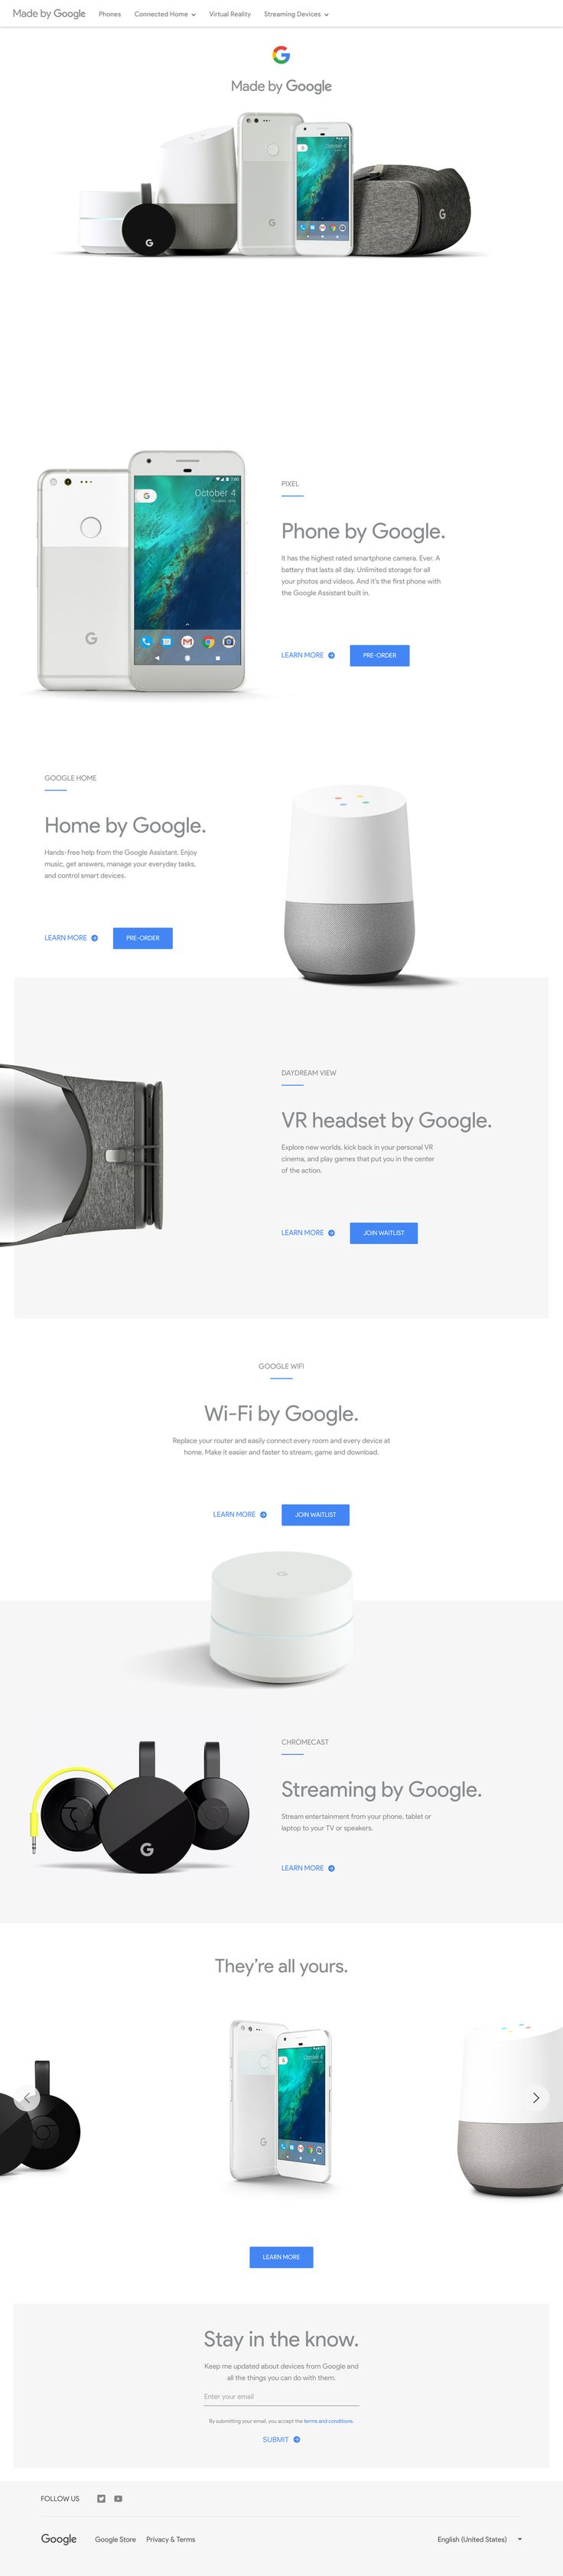 Made By Google   Meet The Newest Members Of The Google Family. #webdesign  #web #design #UI #UX #inspiration #layout #creative #landing #home #flat  #material ...